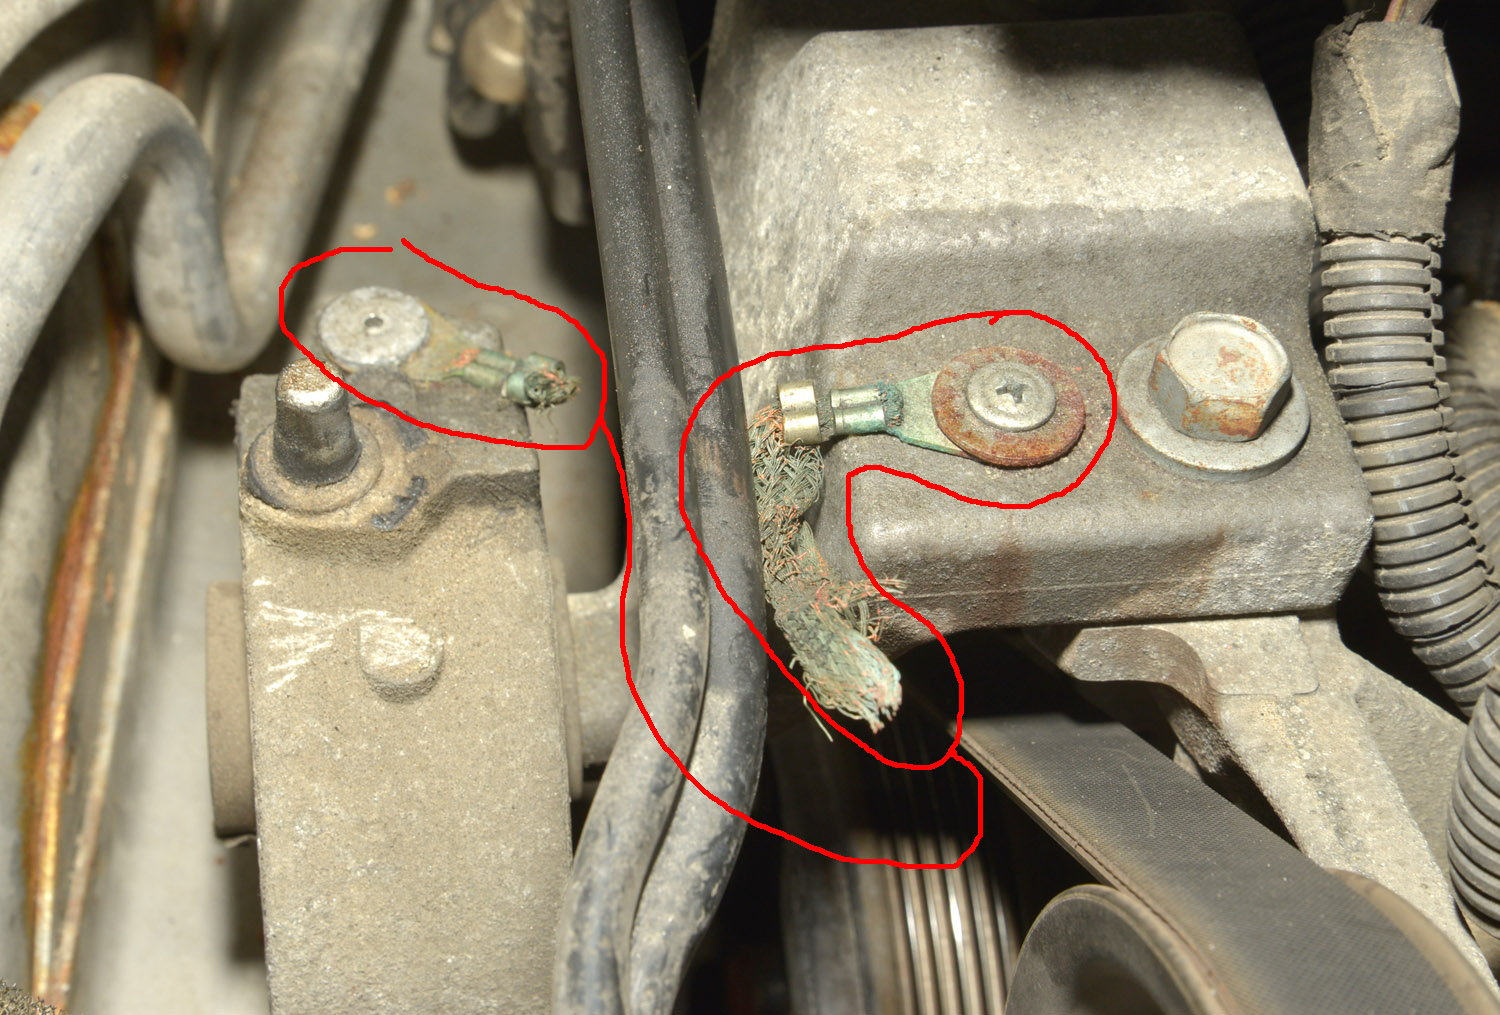 Suggestions for new engine ground strap for 2007 Pacifica ...